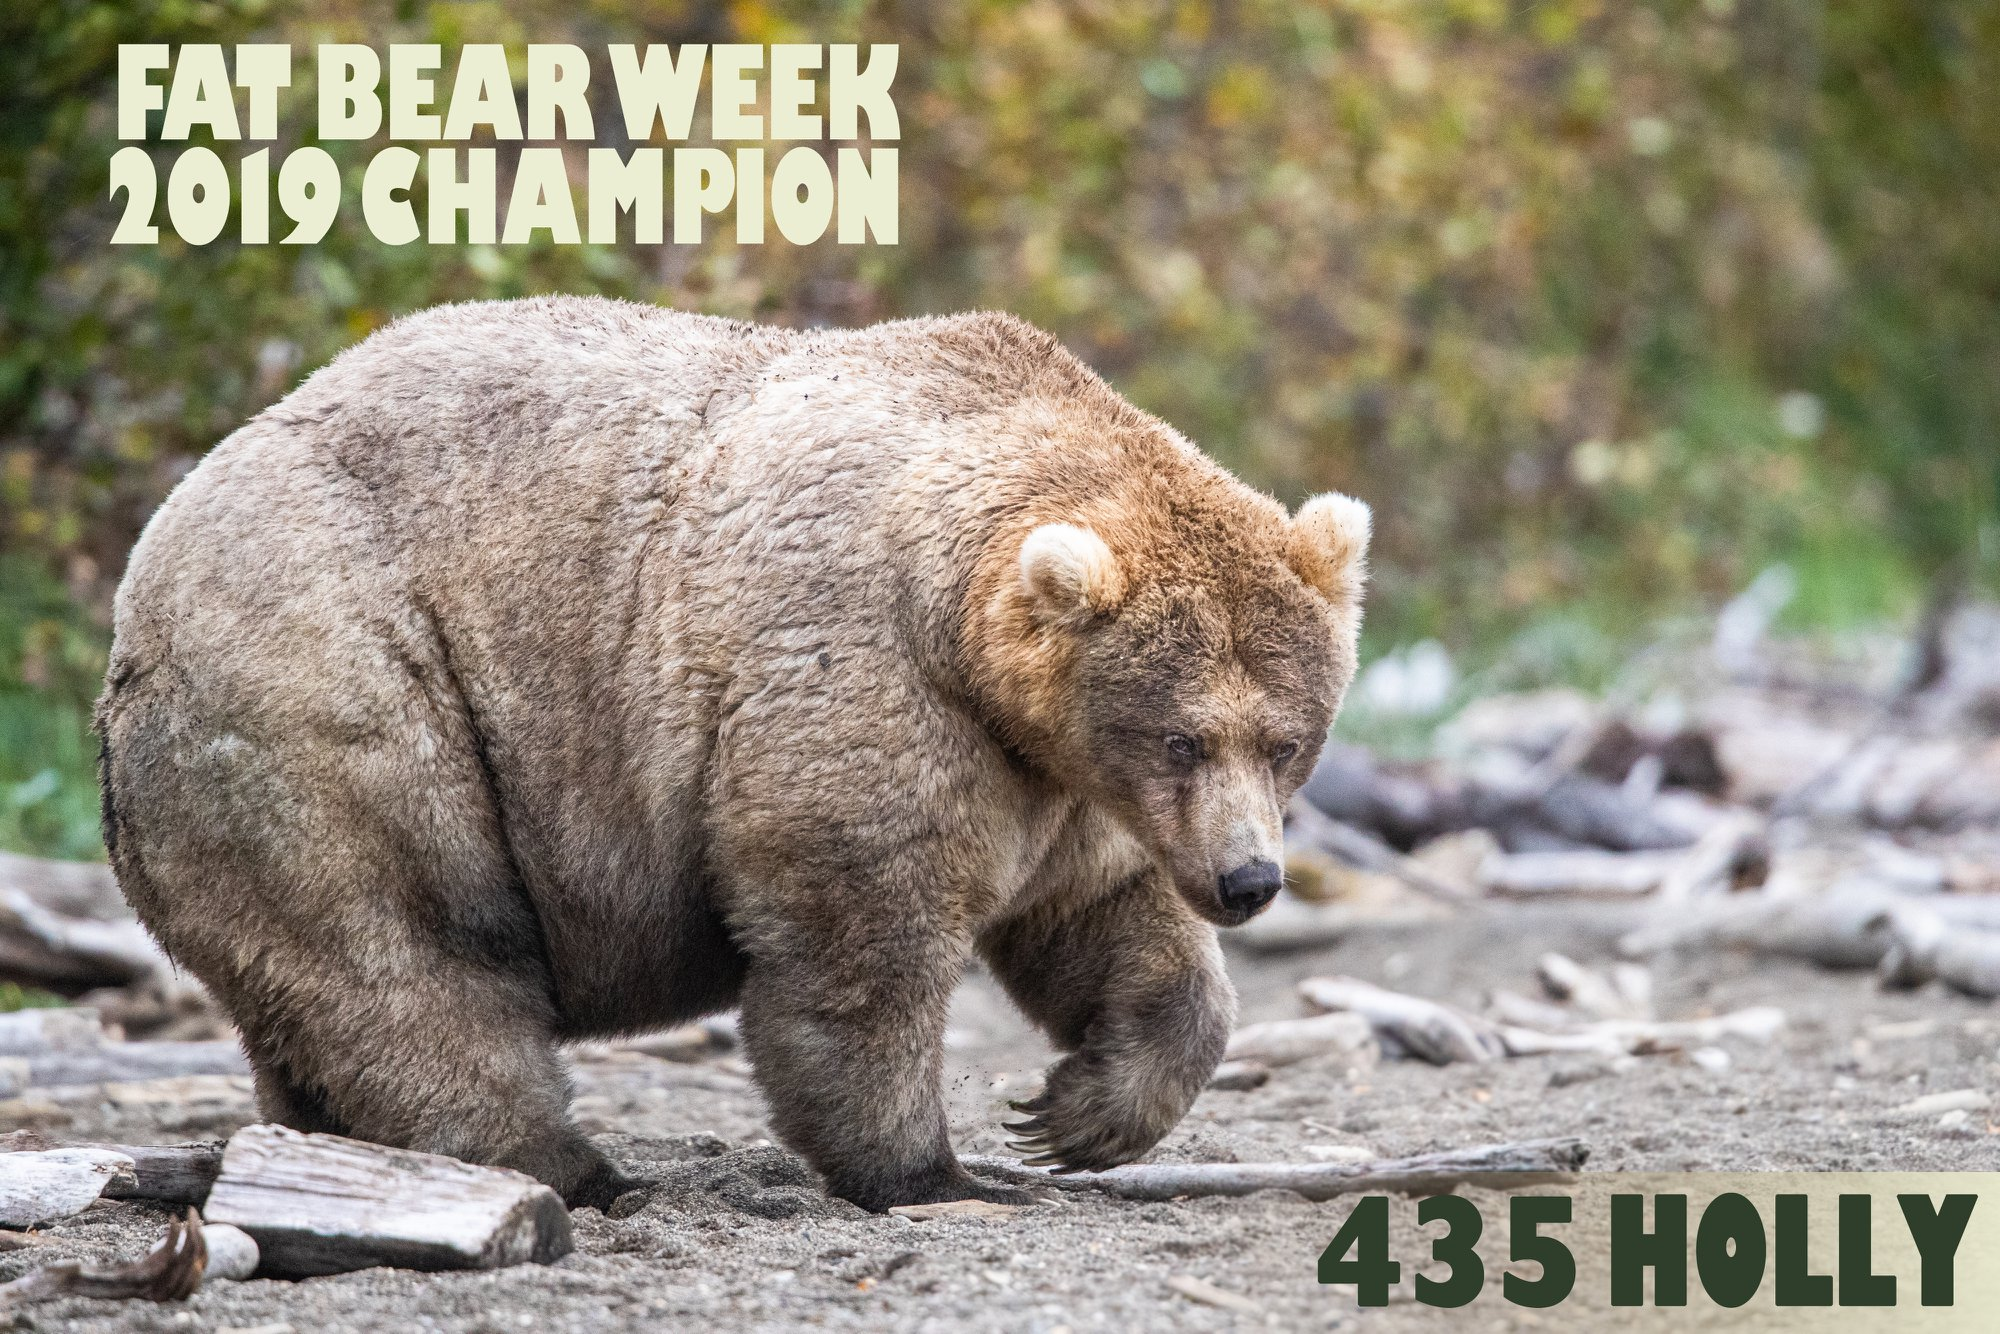 Katmai National Park celebrates Fat Bear Week and just crowned the FATTEST of 'em all - Alvinology